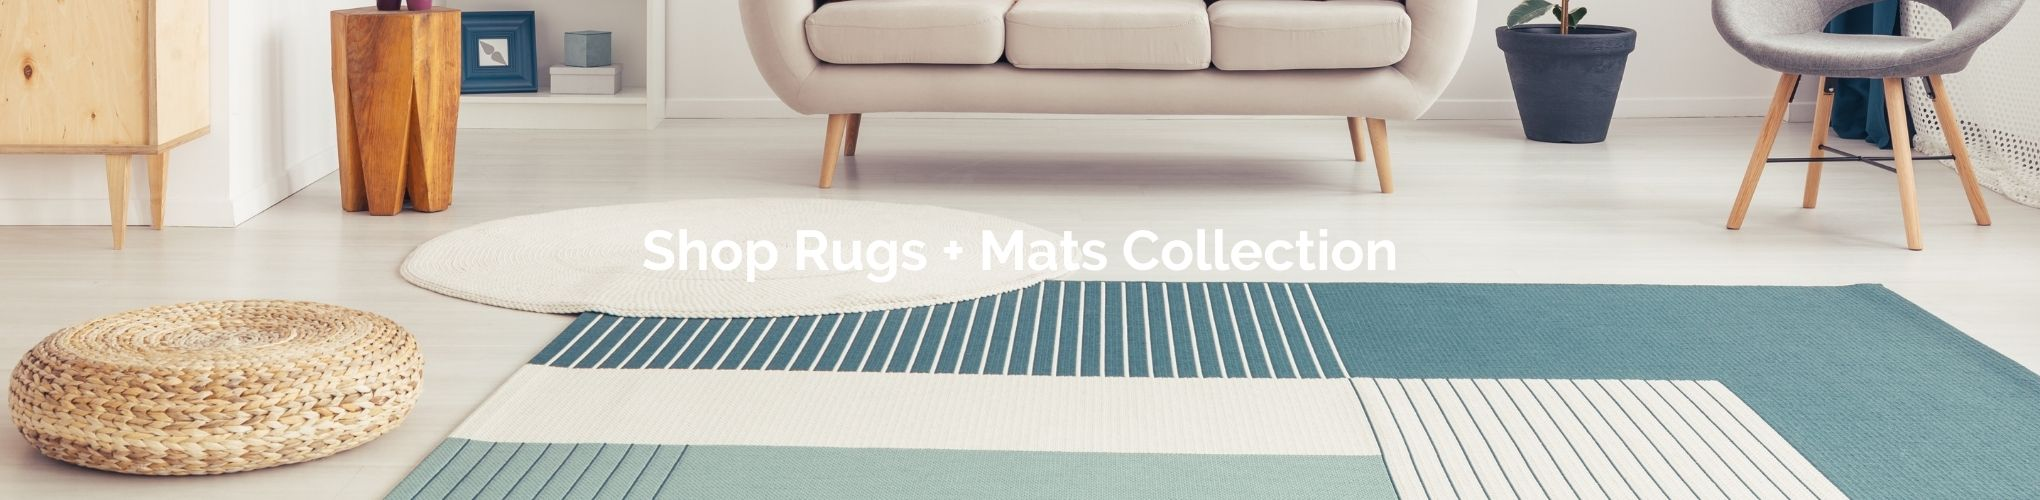 Rugs and Mats Collection from Estilo Living - Buy Rugs and Mats for small spaces and homes Online Now!